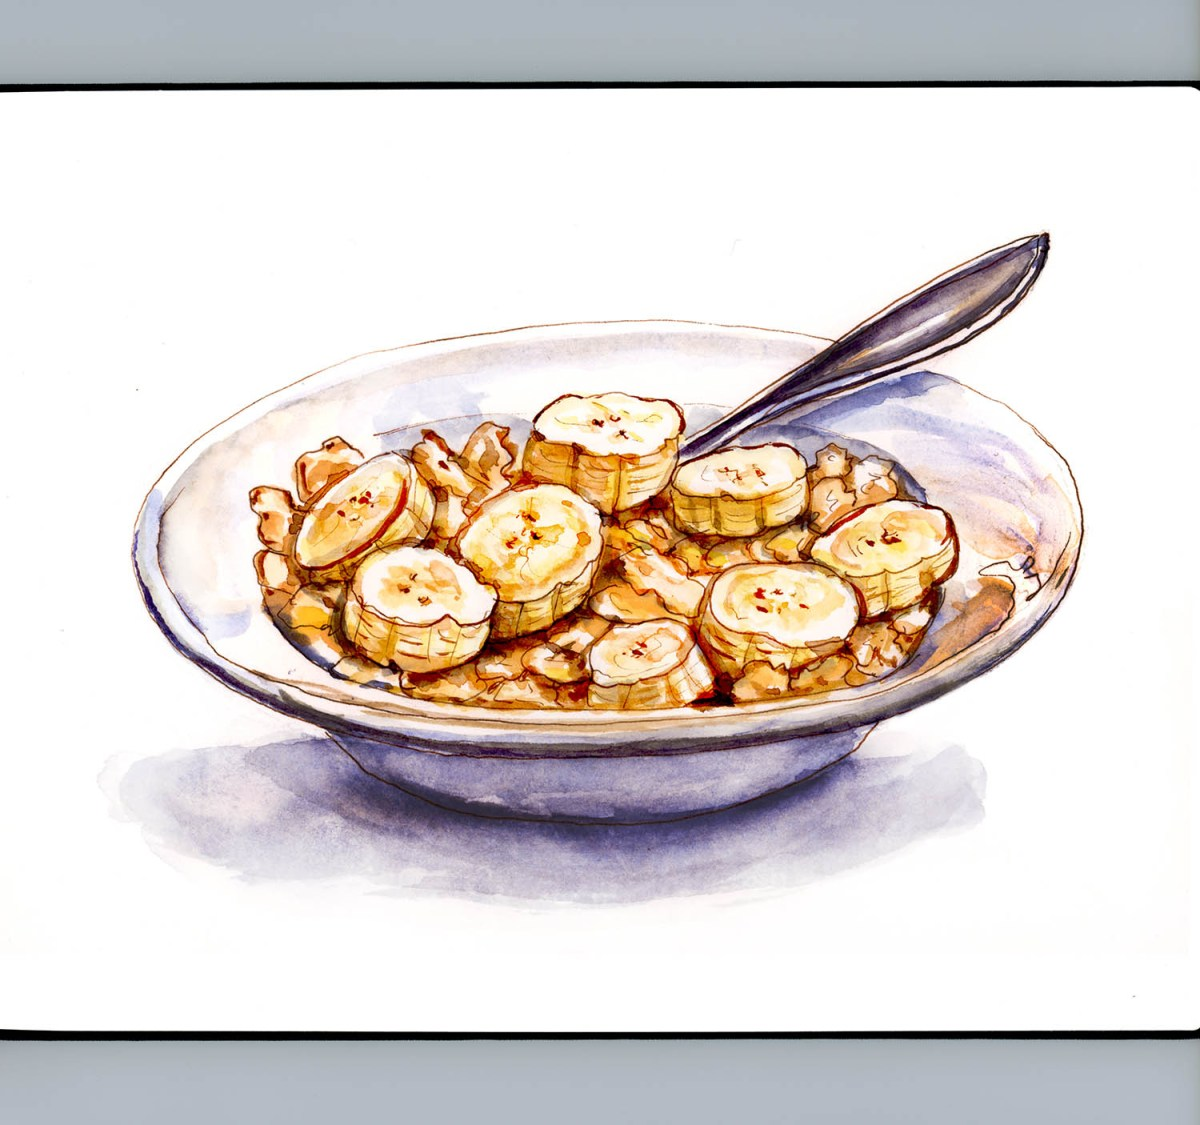 Day 11 - Corn Flakes With Bananas - Doodlewash - #doodlewashApril2018